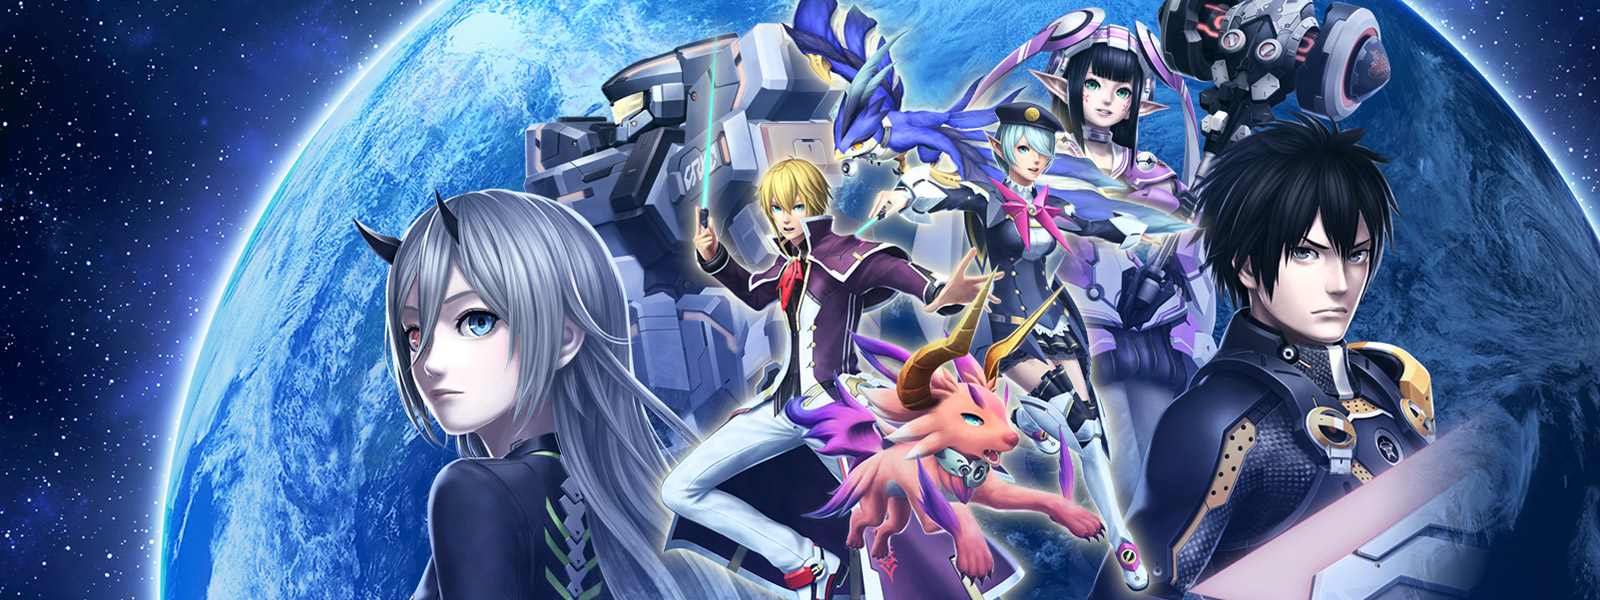 Collage de personnages de Phantasy Star Online 2 sur un fond spatial.